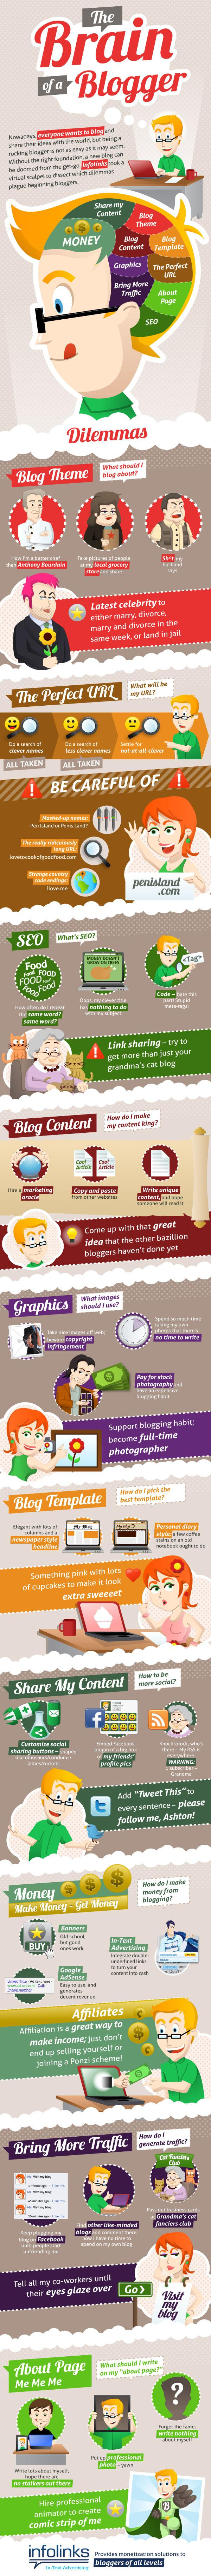 Infographic - Brain of a Blogger - By infolinks.